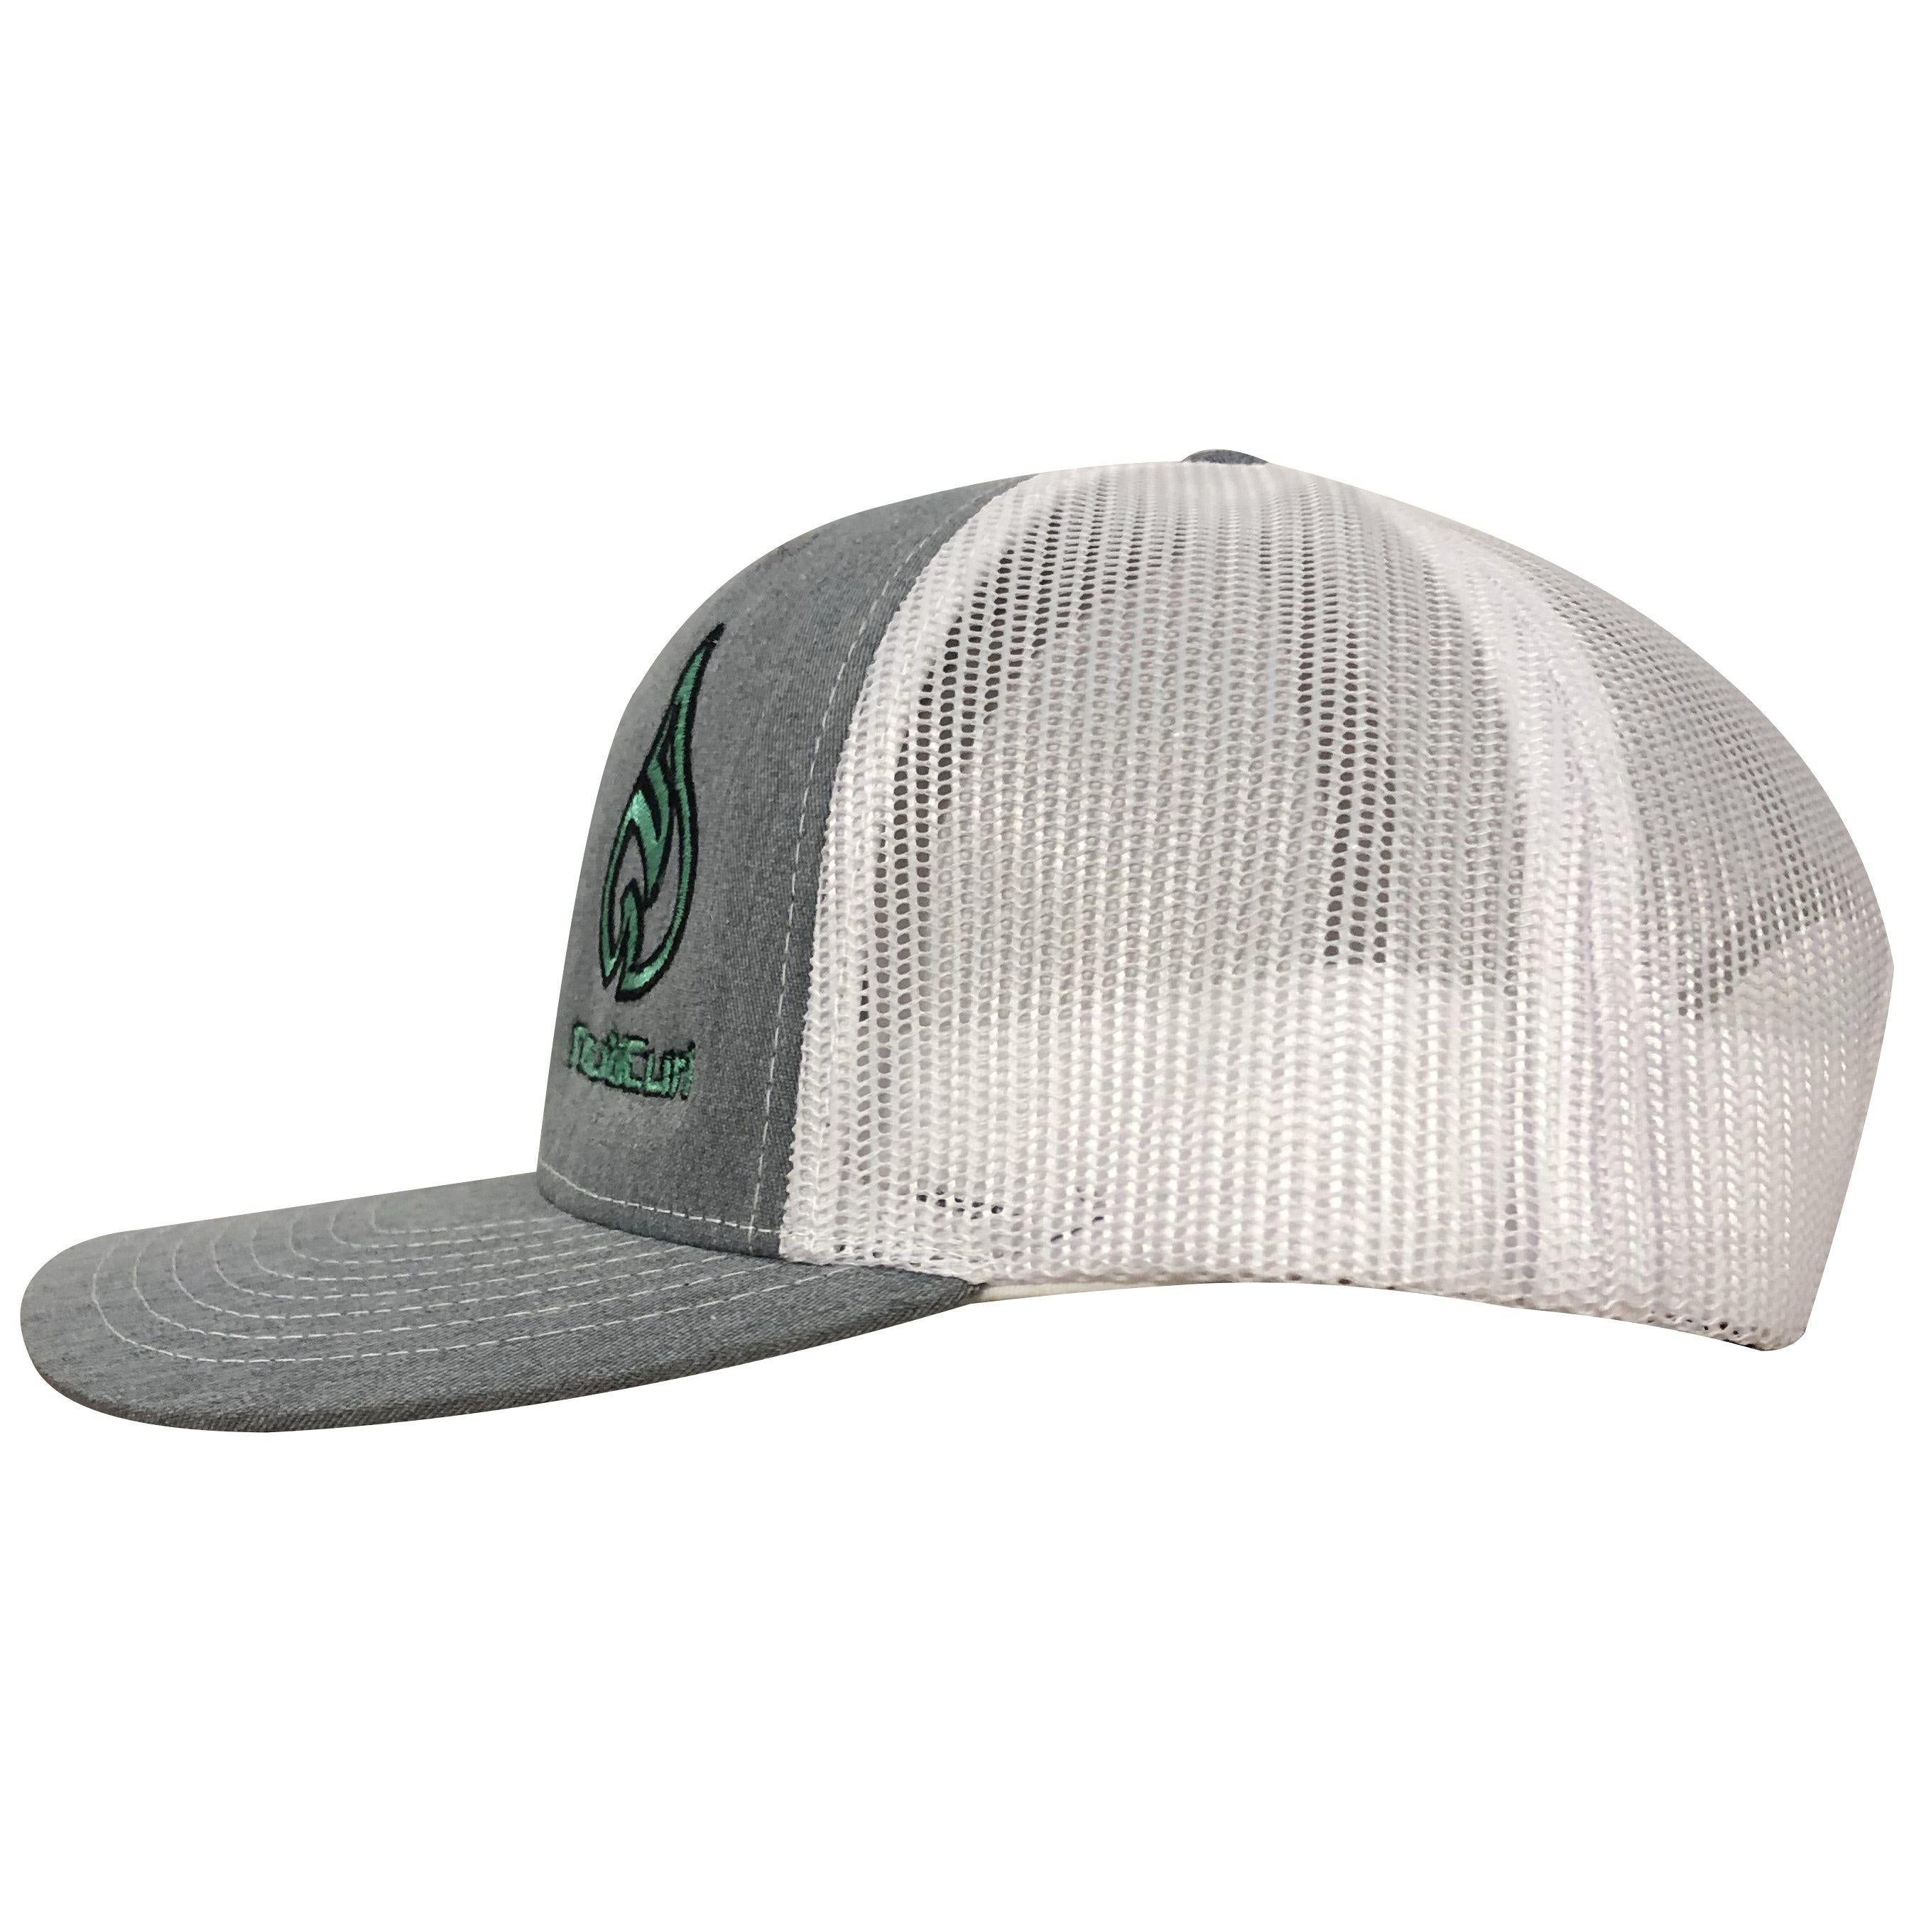 NautiCurl Snap Back Mesh Surf Hat LE